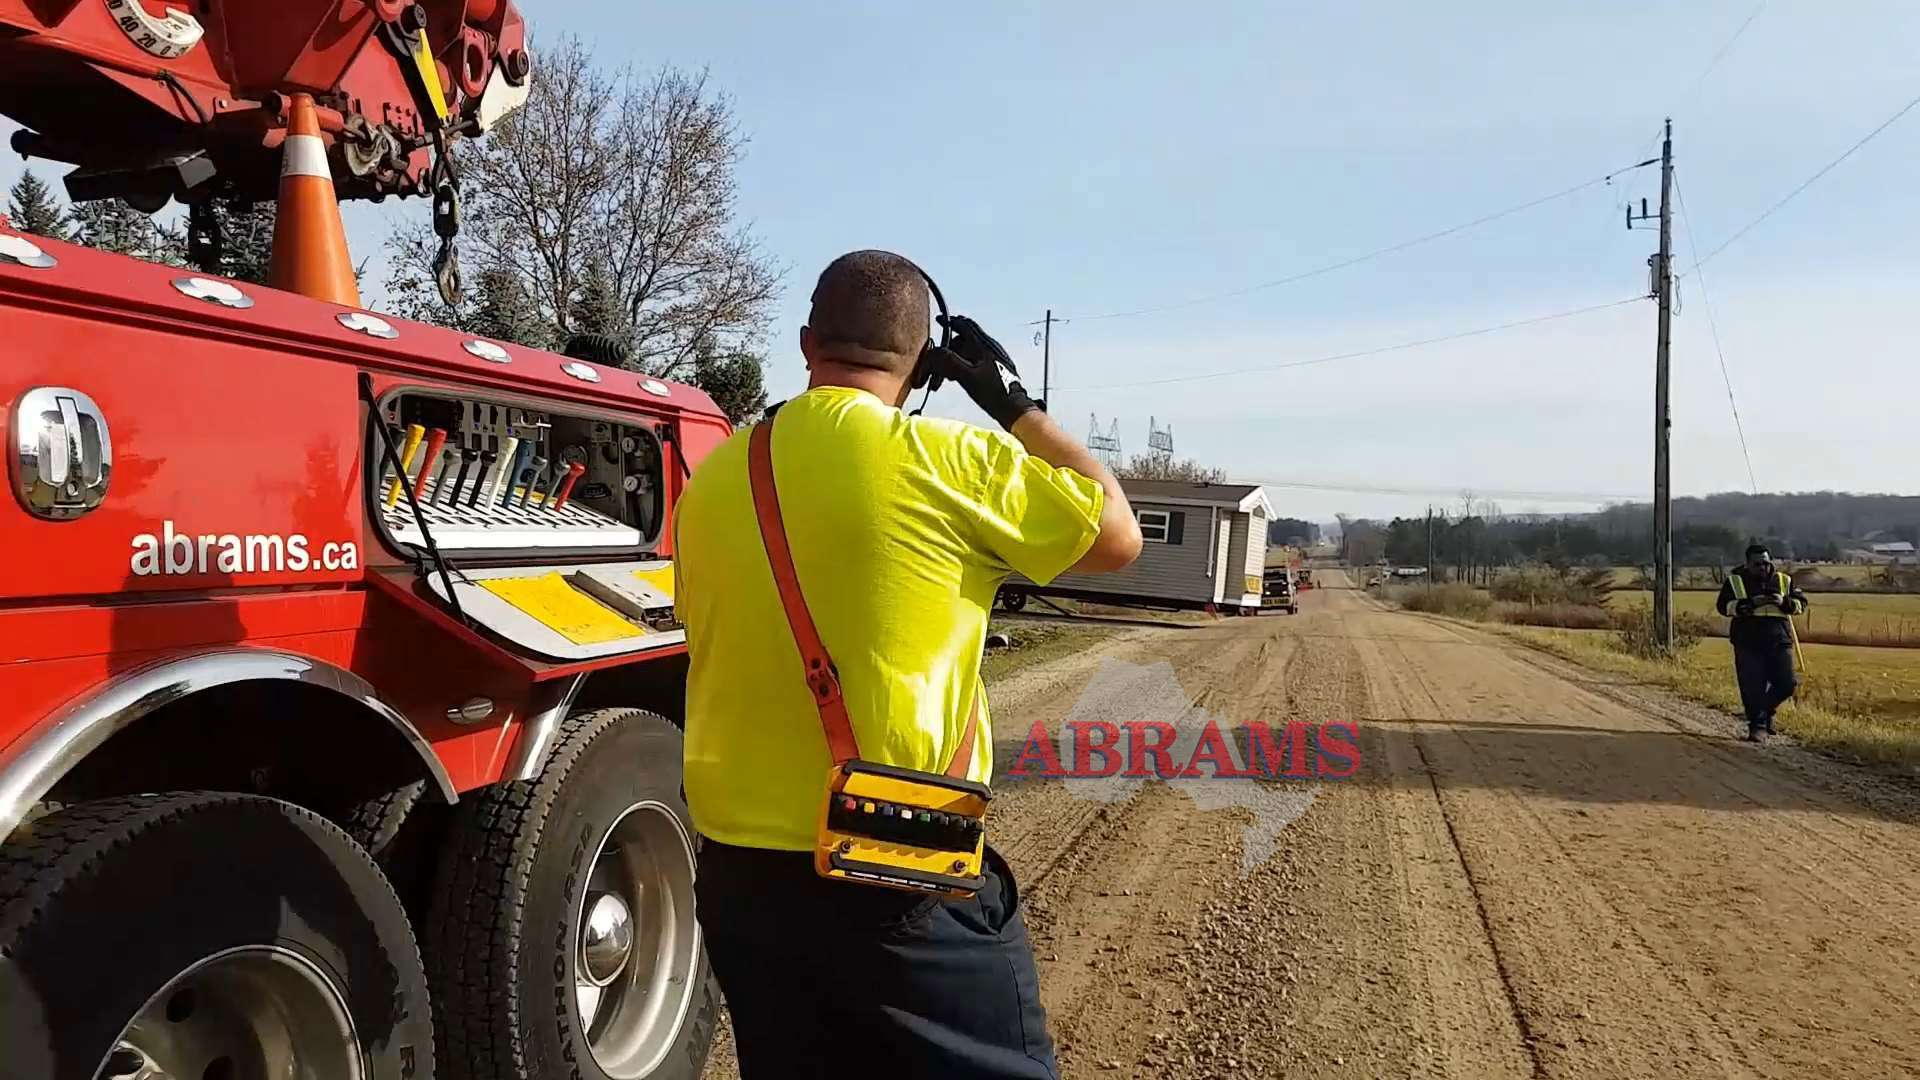 Tractor reverses onto the road and winch pulls trailer